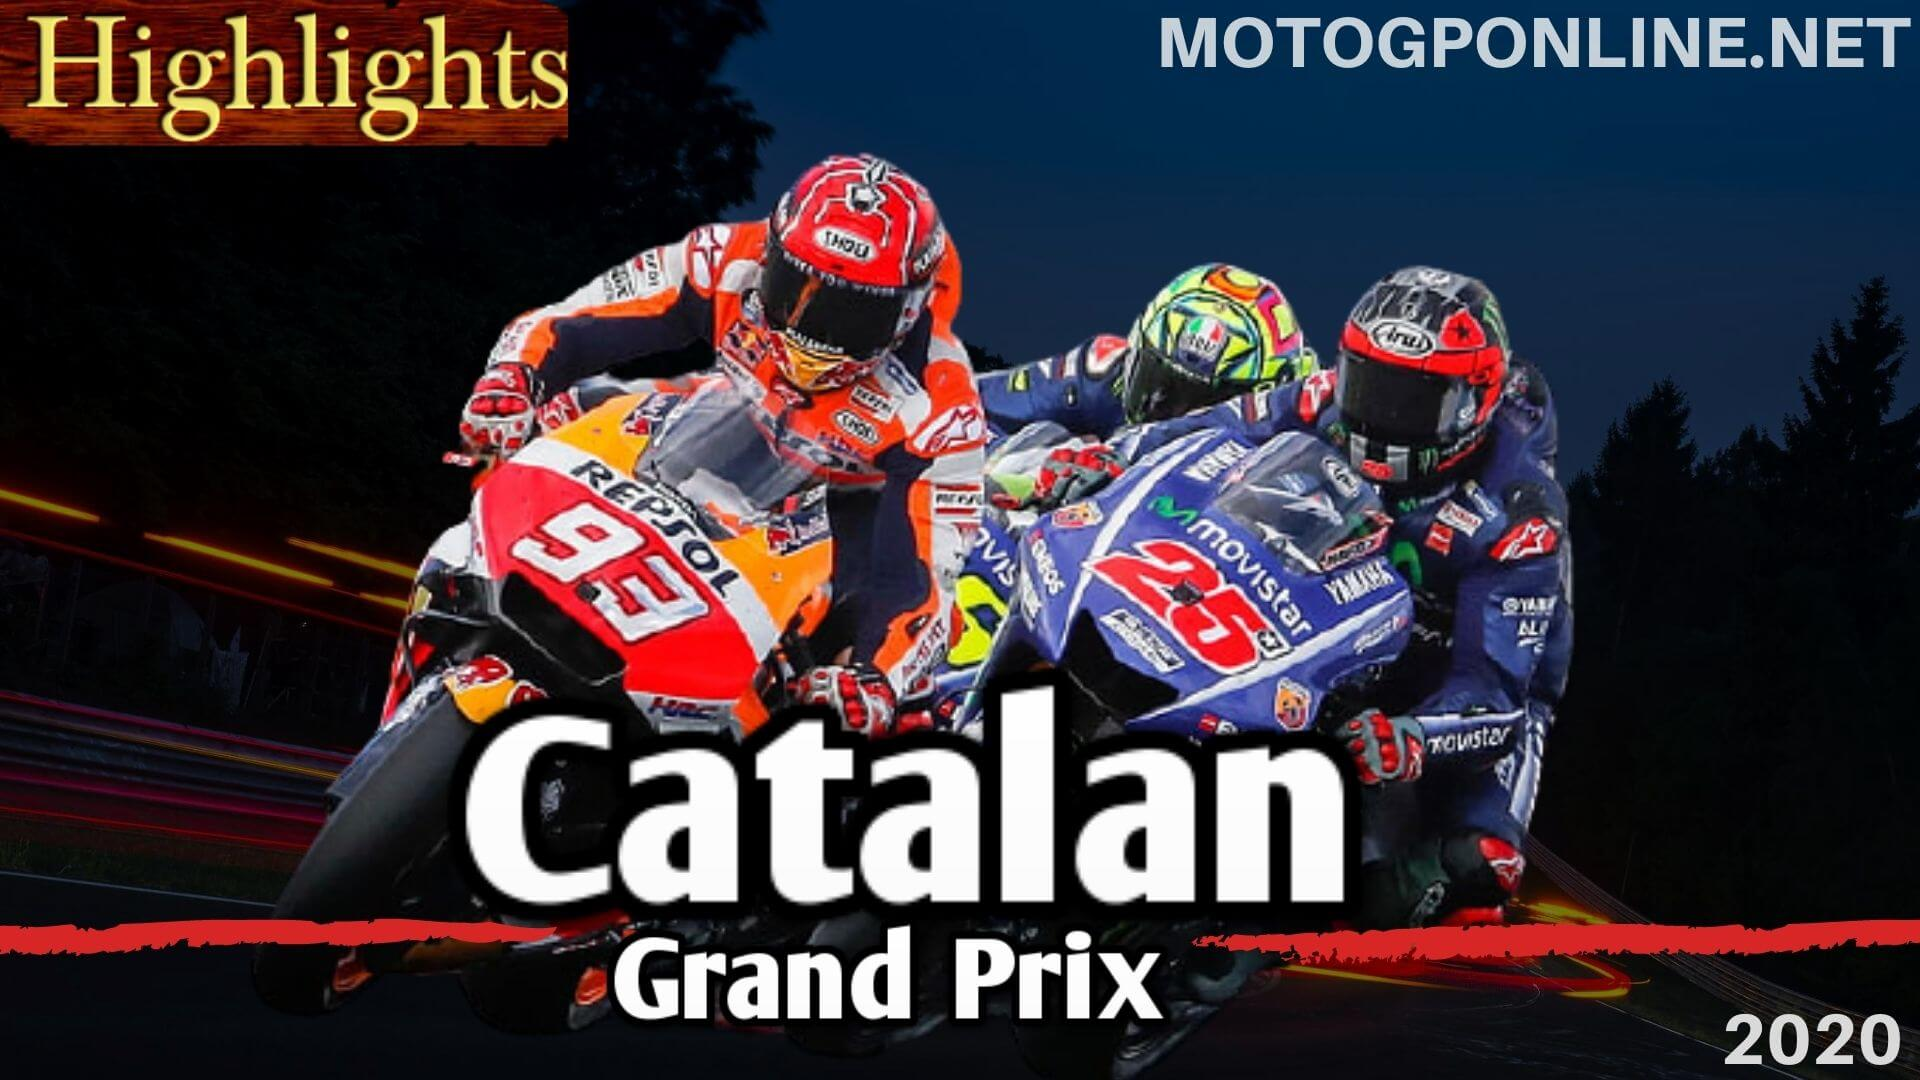 MotoGP Catalunya Grand Prix Highlights 2020